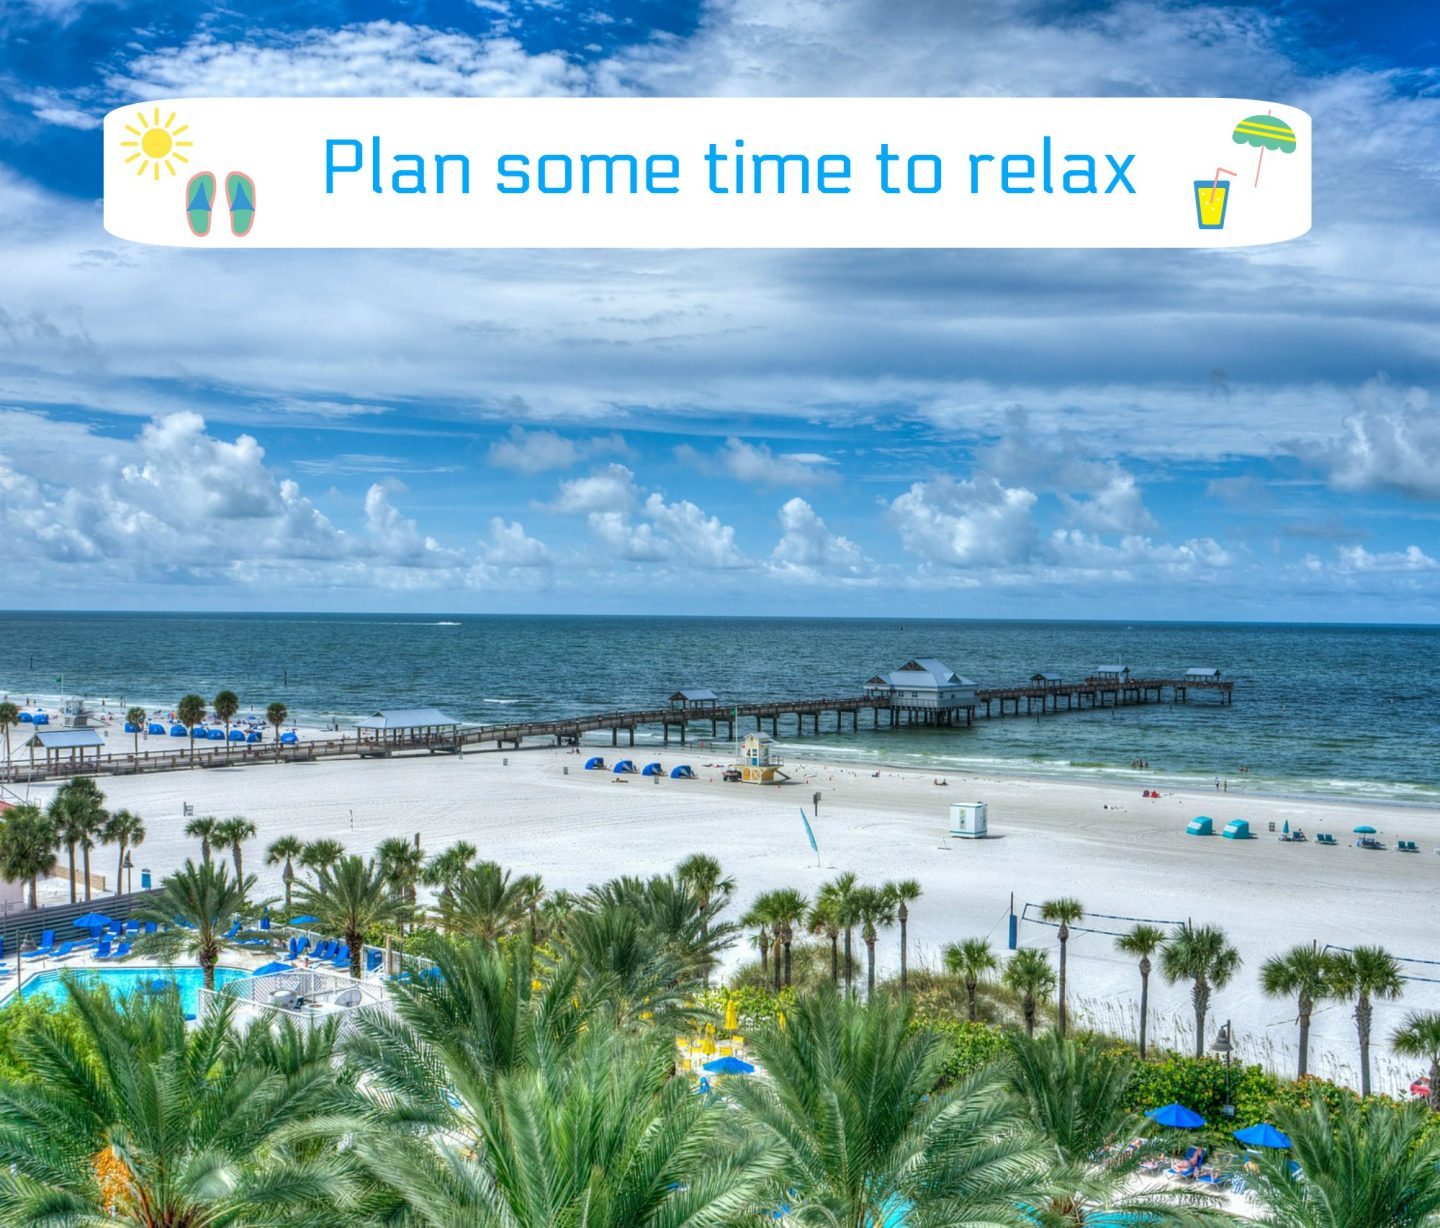 Tips for planning a family holiday to Orlando - alternative places to visit in Orlando which are not theme parks